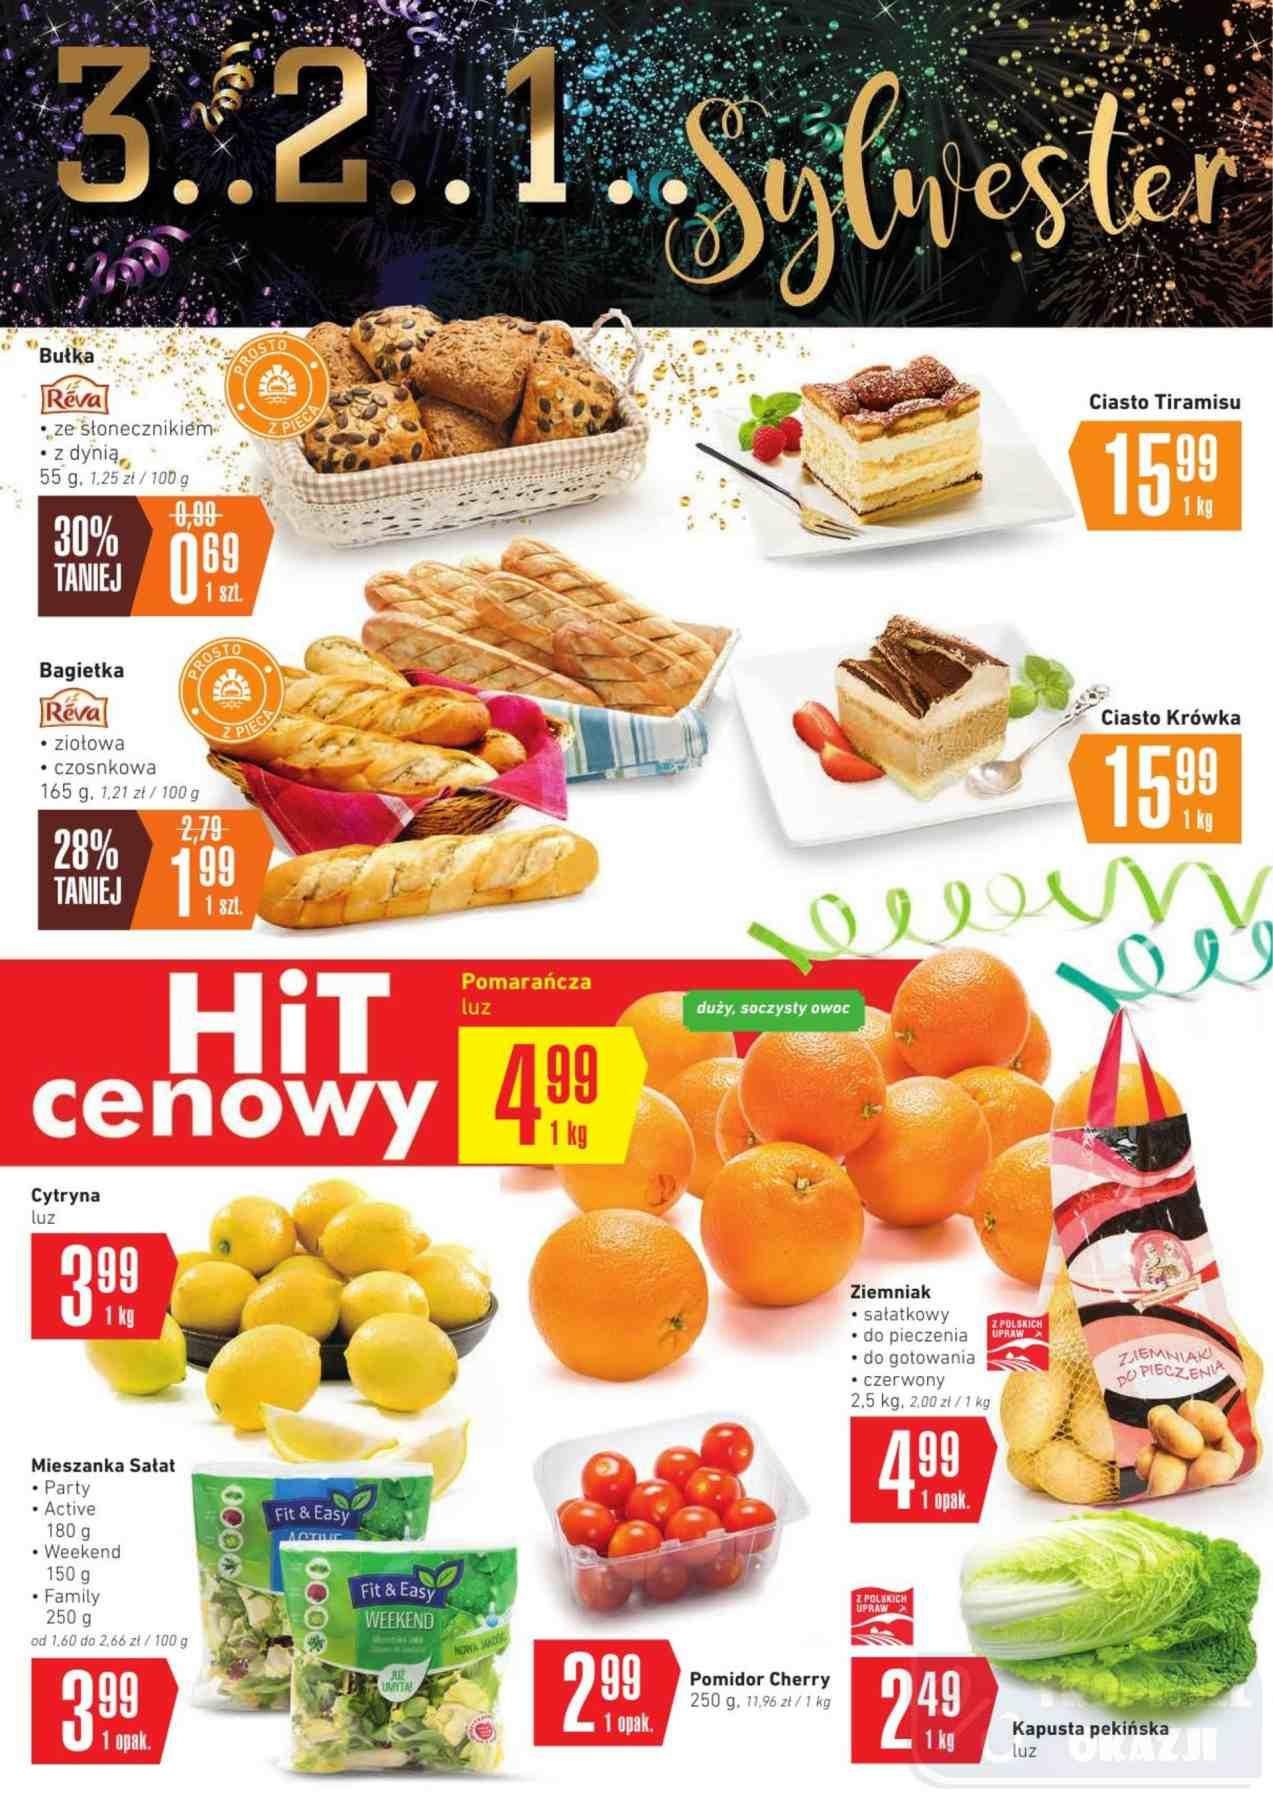 Gazetka promocyjna Intermarche do 31/12/2018 str.9